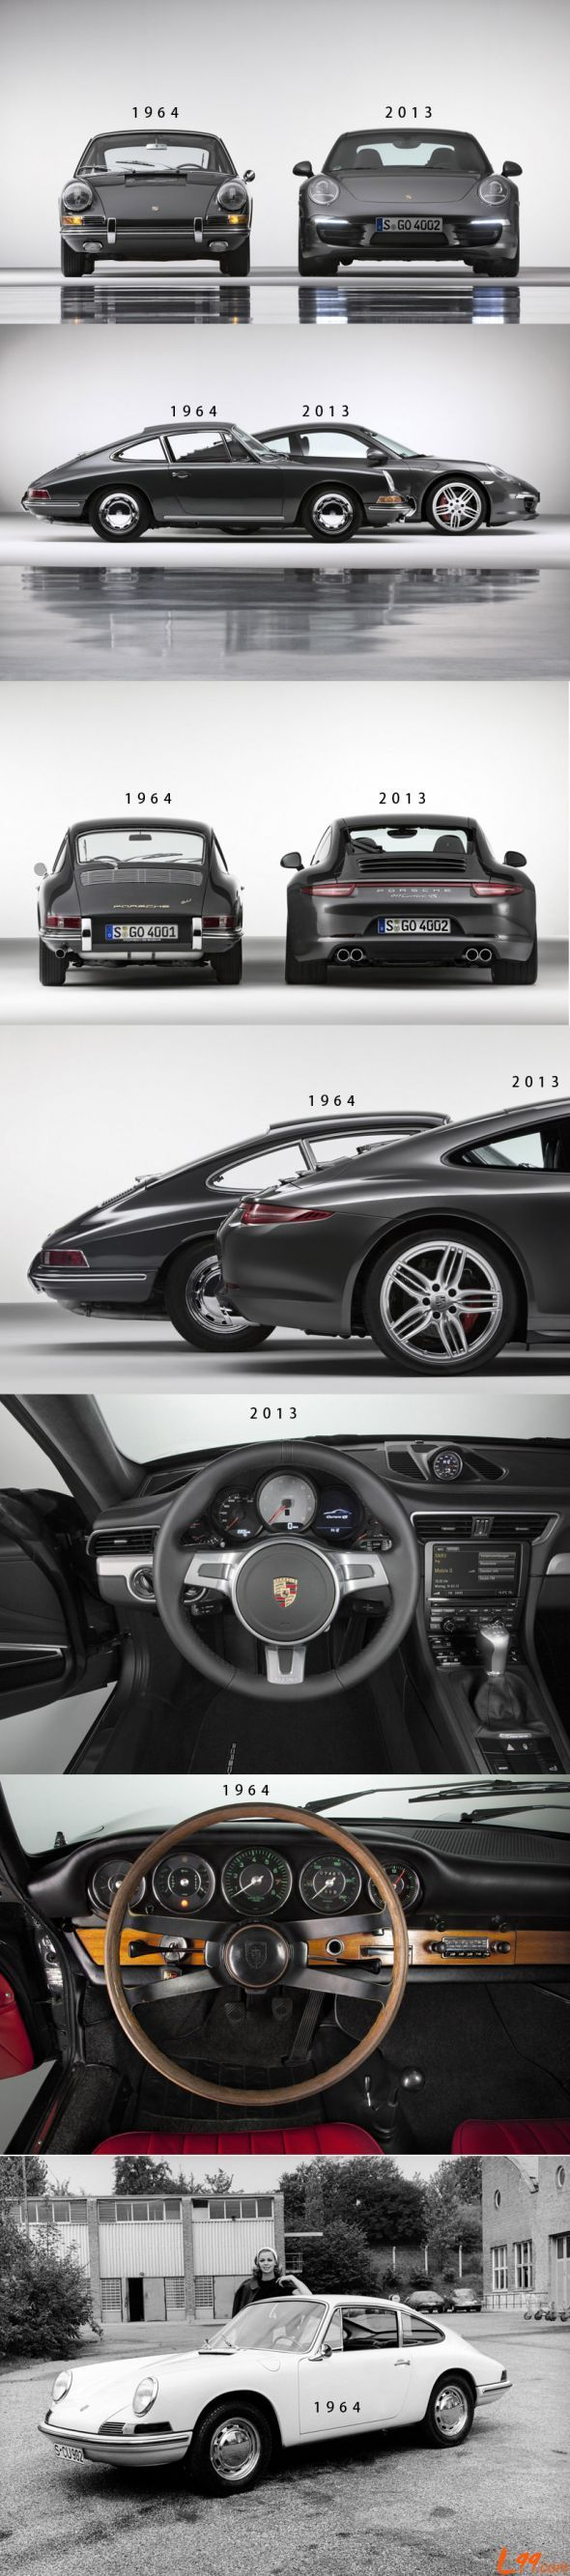 Porsche 911 ~ 1964 vs 2013. Which would your choice be? #OldvsNew